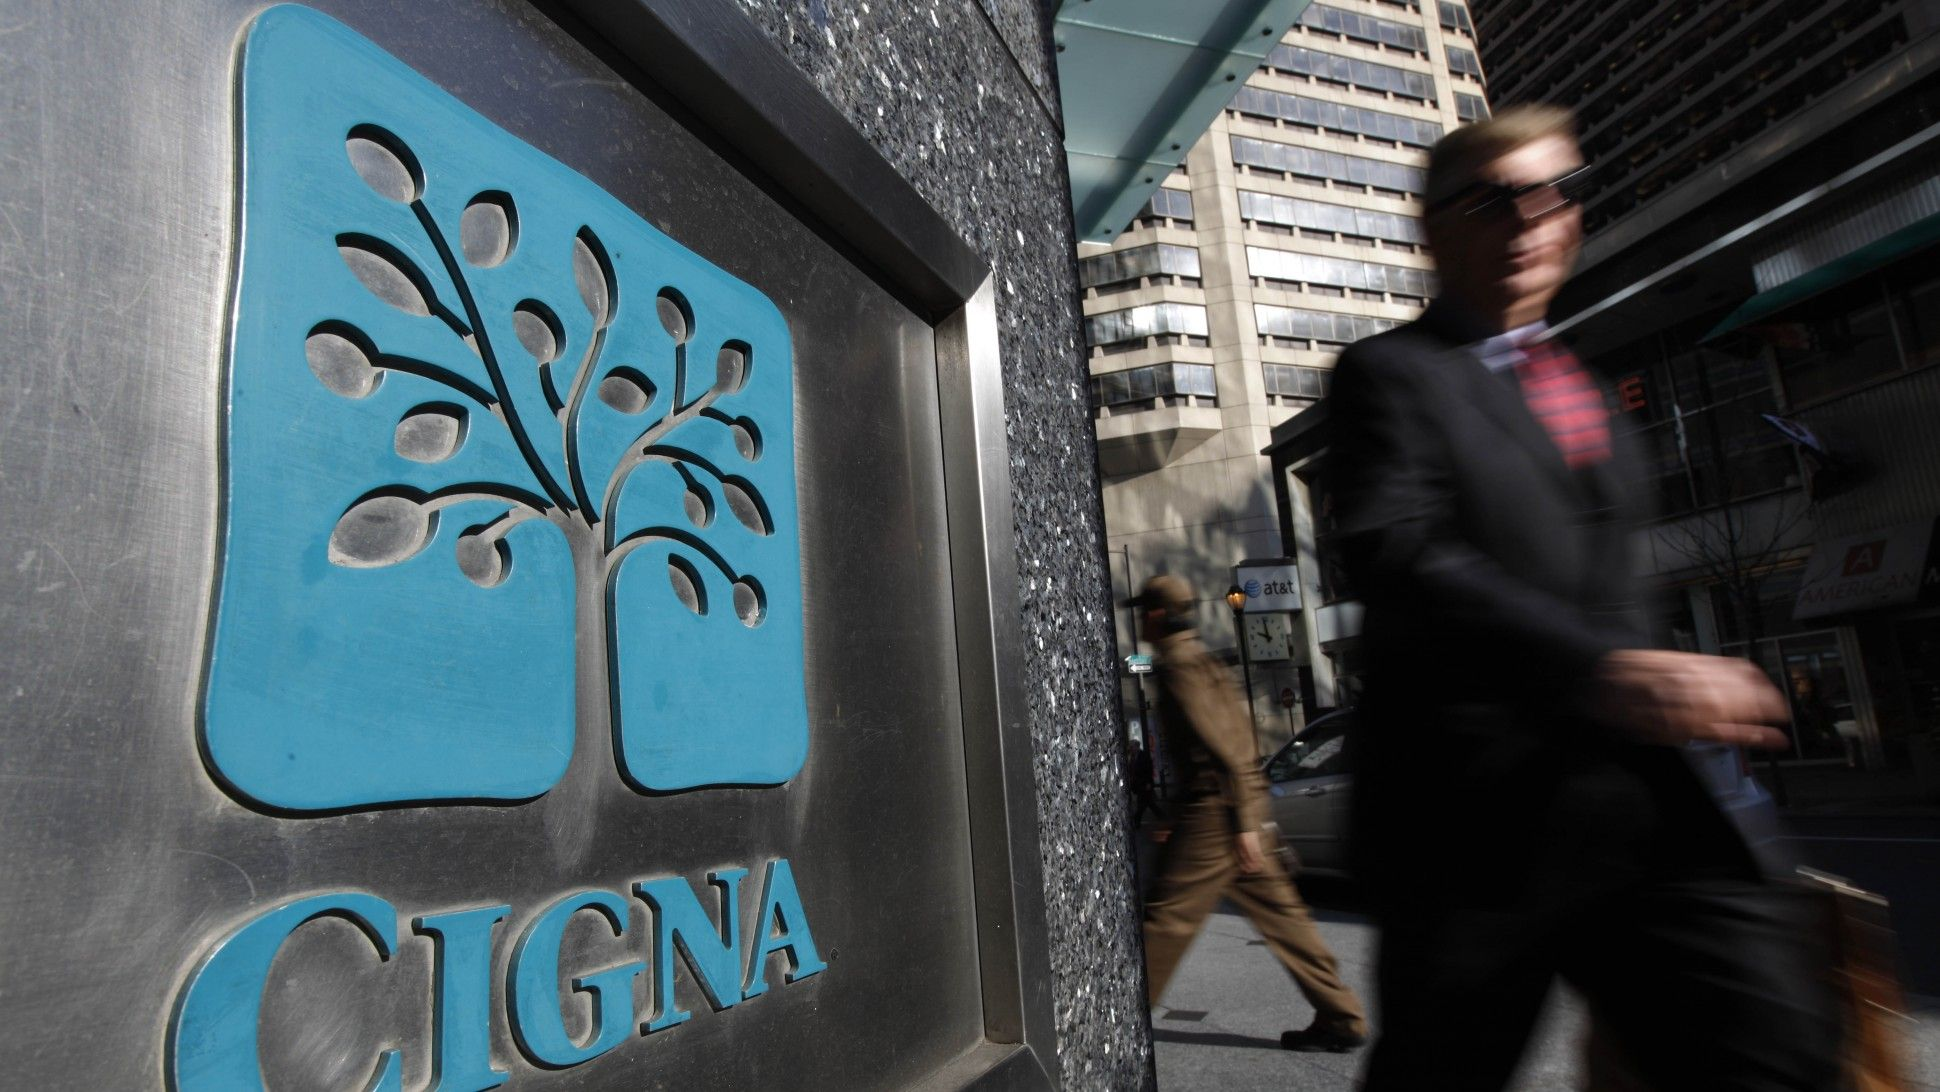 Cigna To Expand On Obamacare Exchanges In 2015 New york